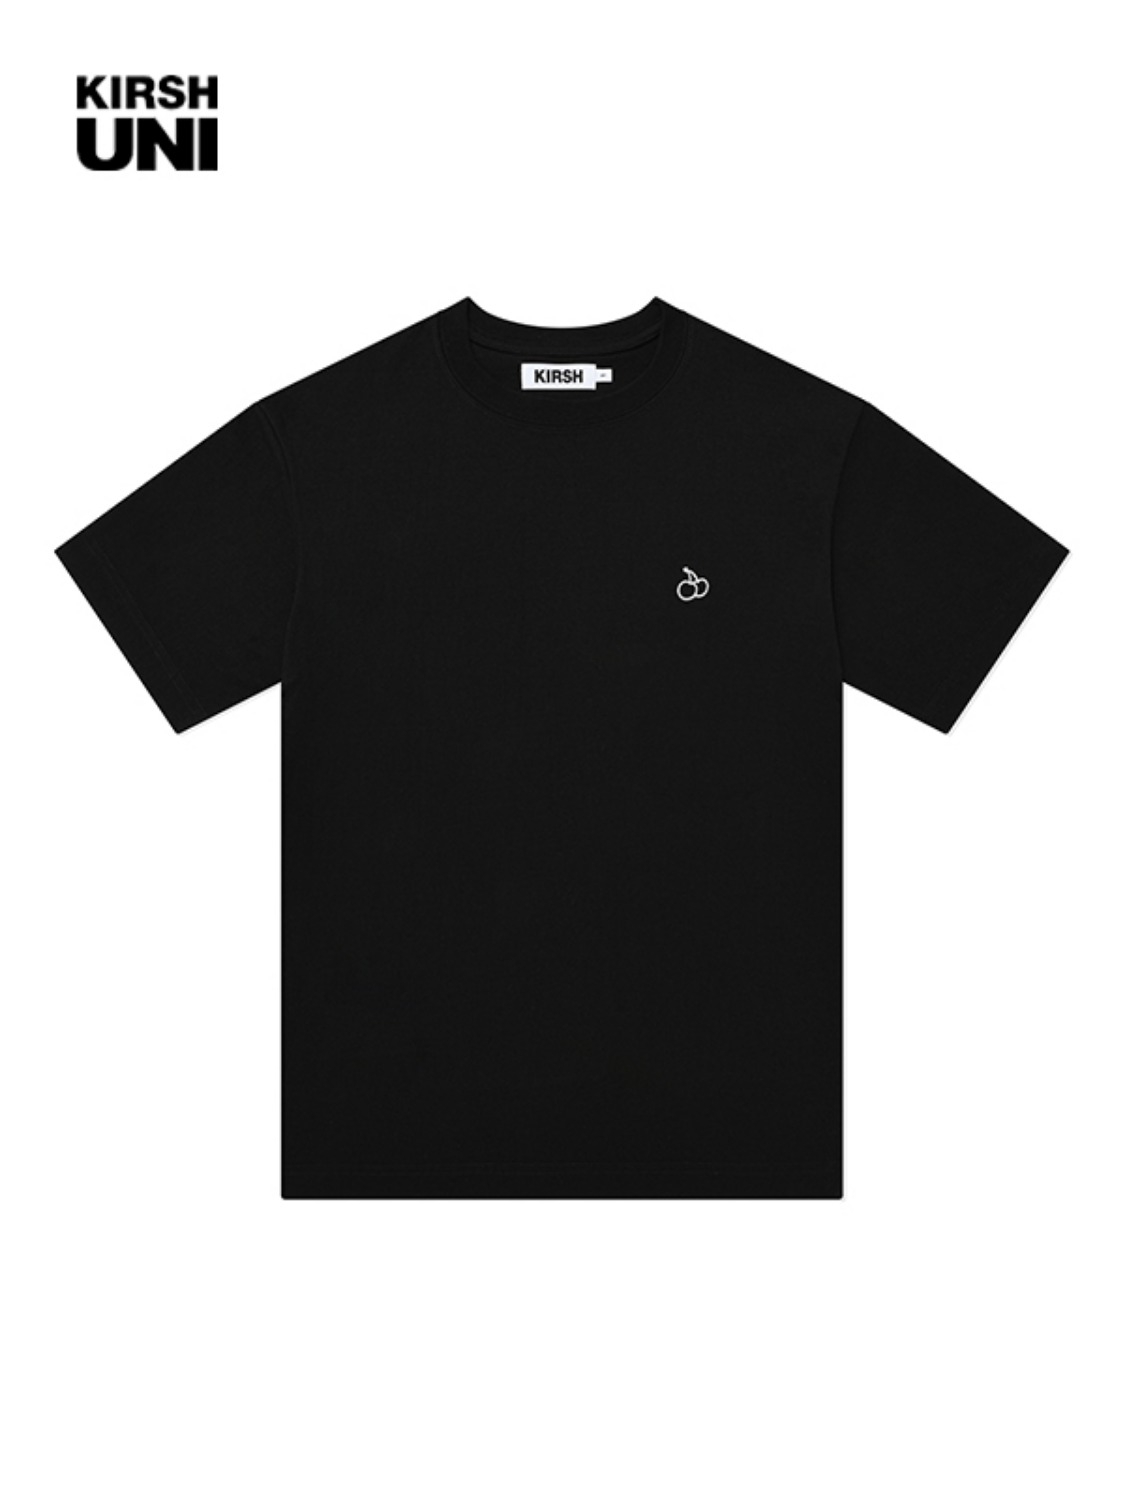 UNI OUTLINE CHERRY HALF SLEEVE T-SHIRT KS [BLACK]